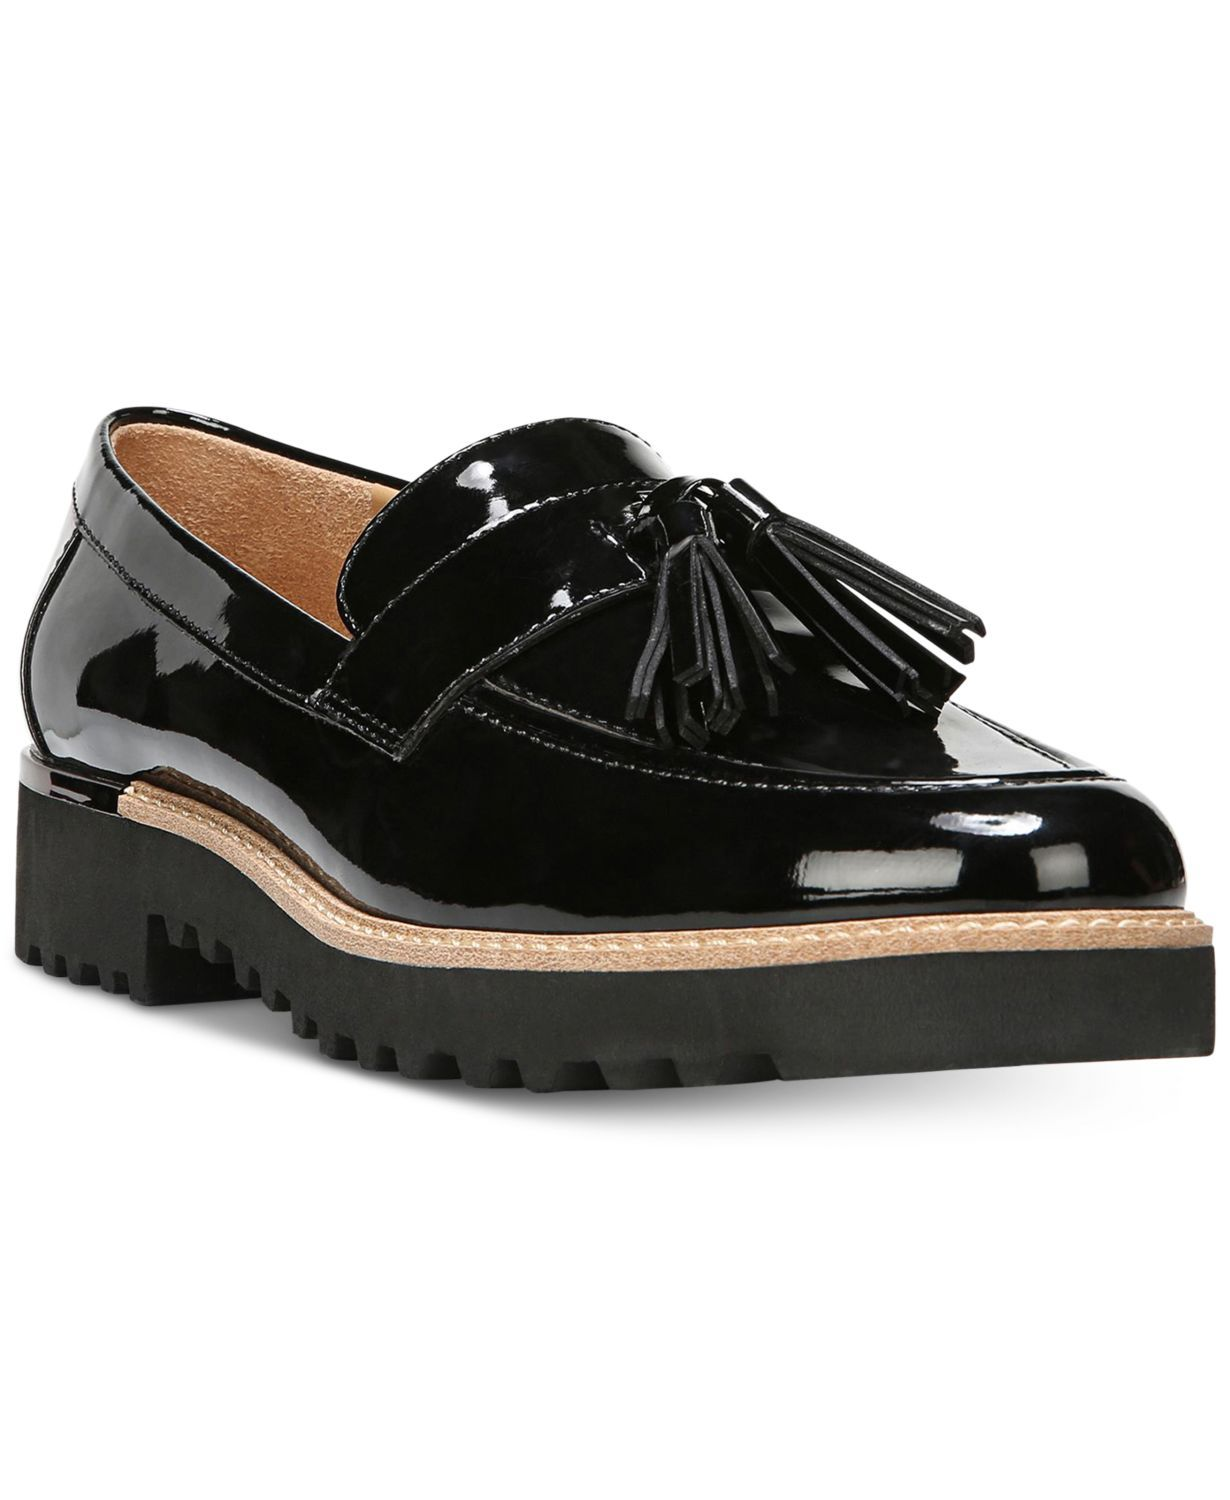 Patent Leather Loafers Franco Sarto macys.com $89.00 SHOP NOW The shape itself isn't unique to the boardroom, but the high-shine finish and rugged tread are. This personality-packed pair can be styled in the same way as its more basic cousin.